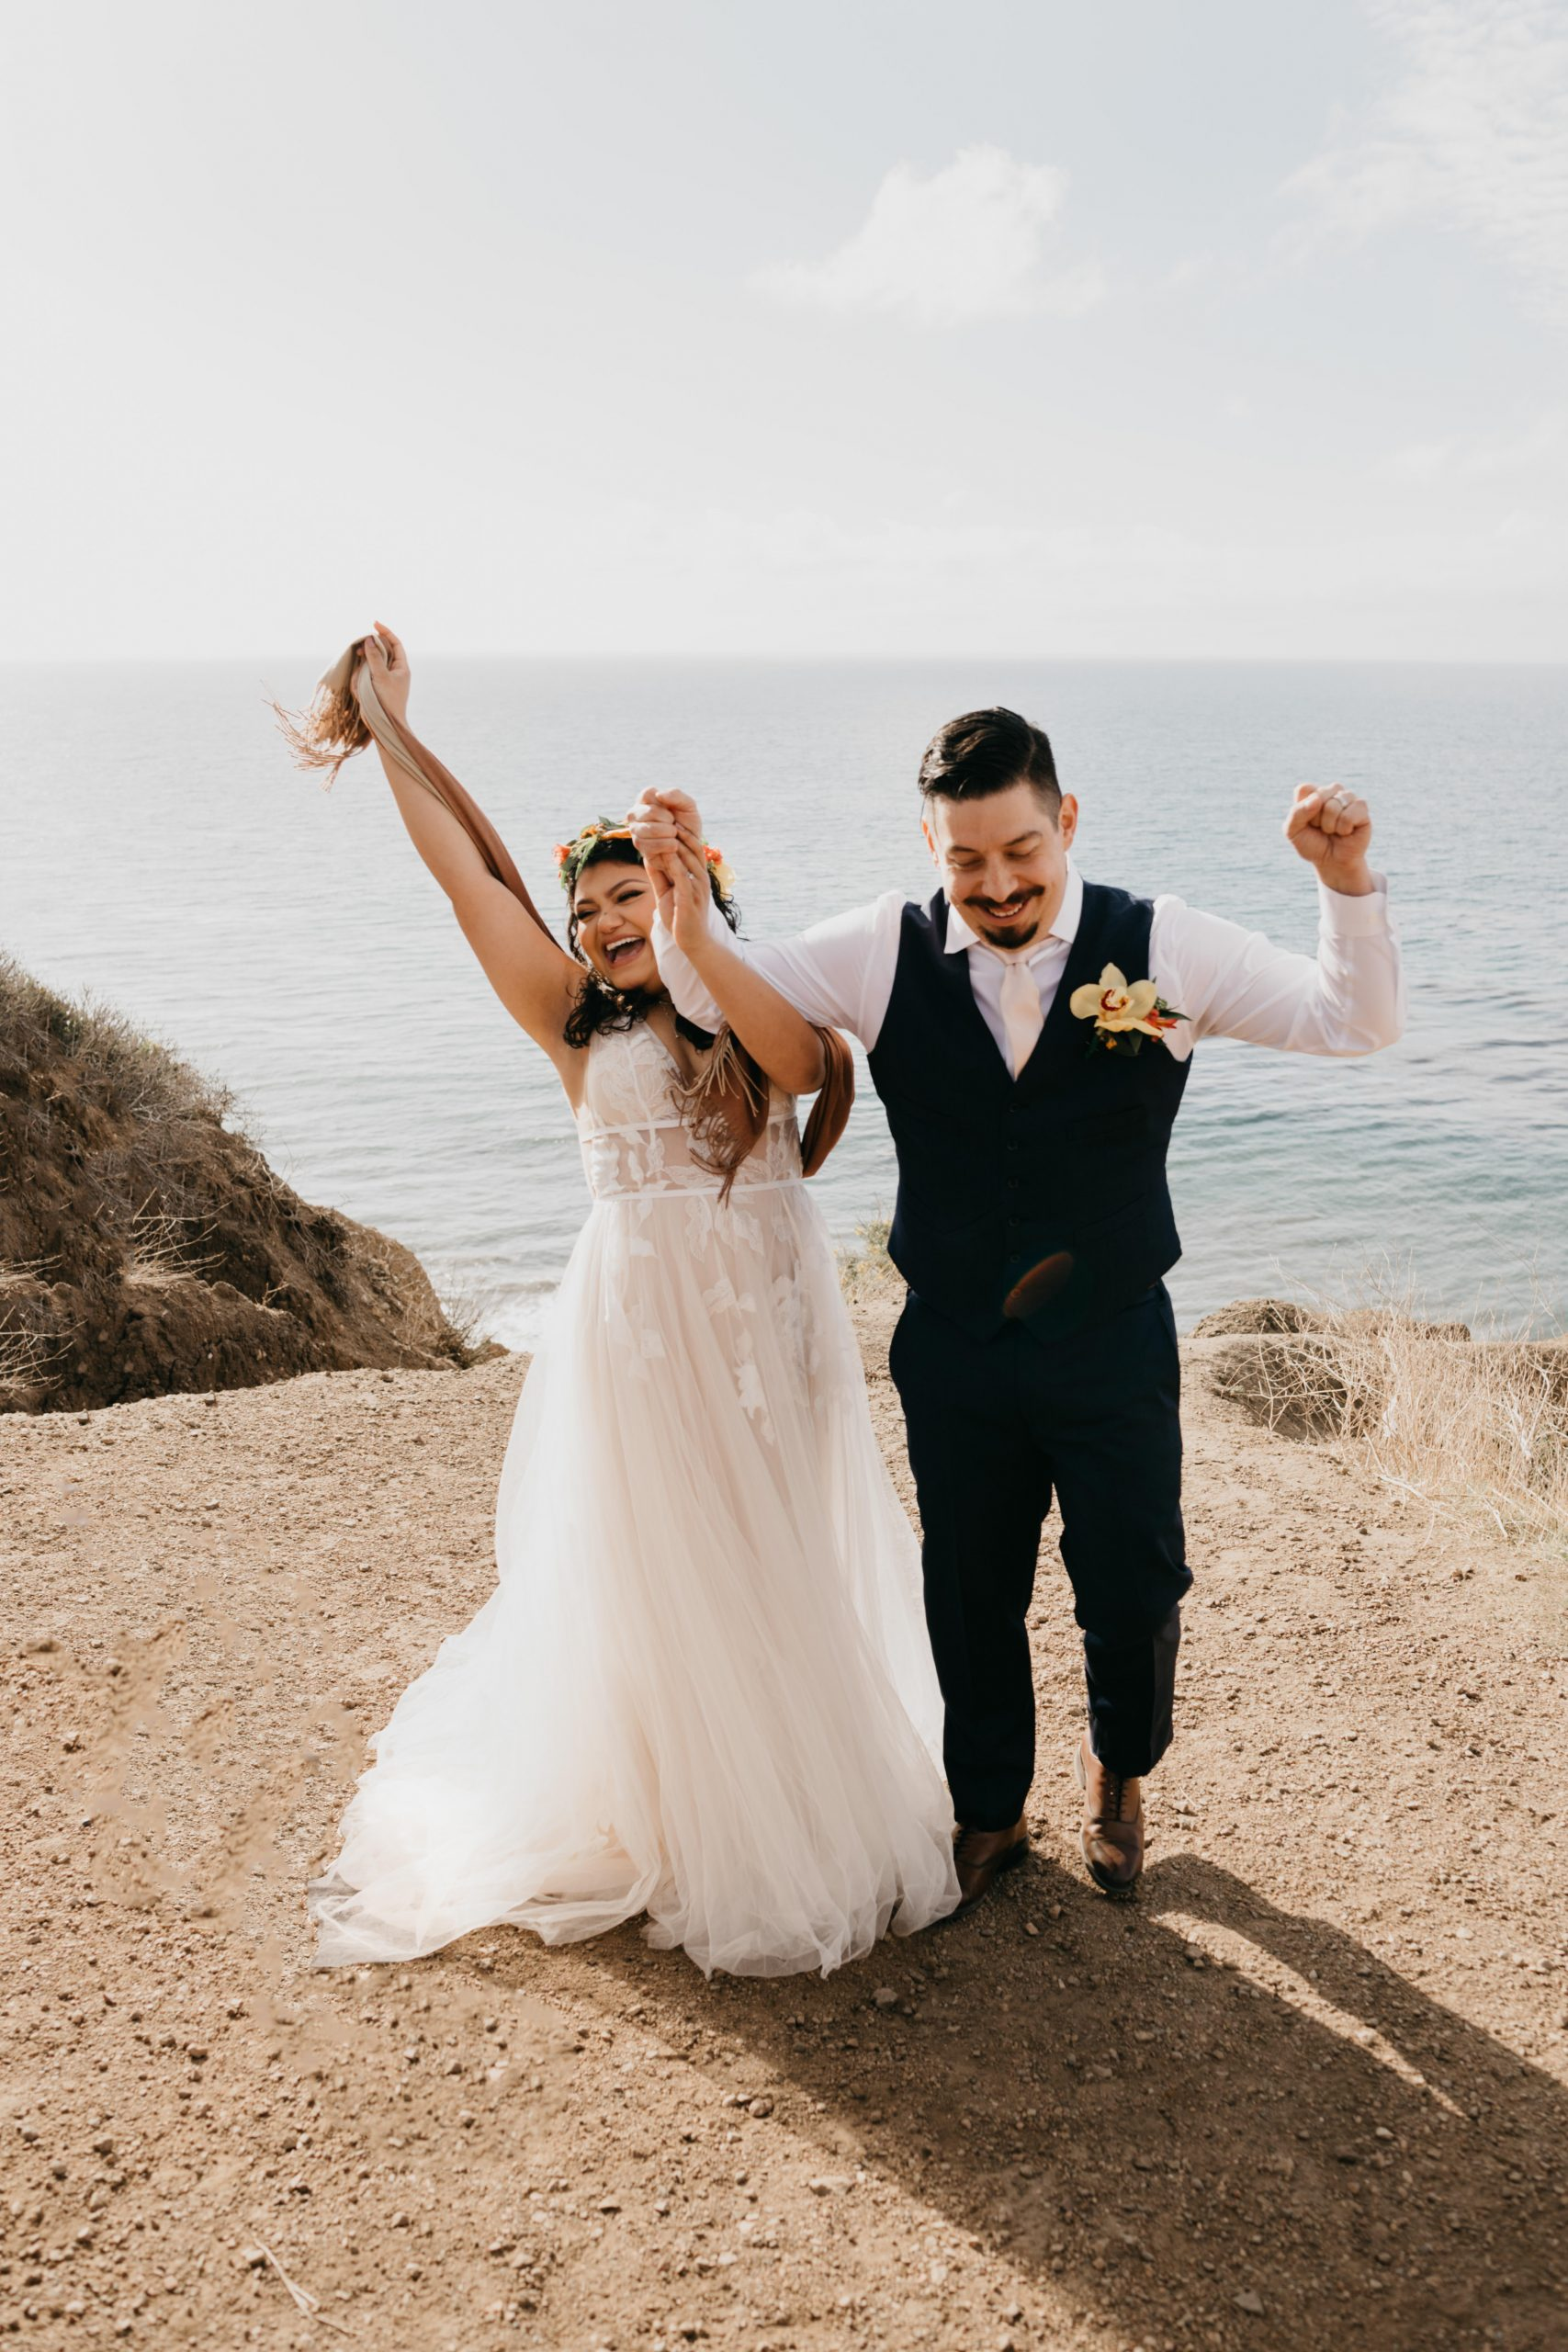 Bride and Groom in El Matador Beach Elopement, image by Fatima Elreda Photo